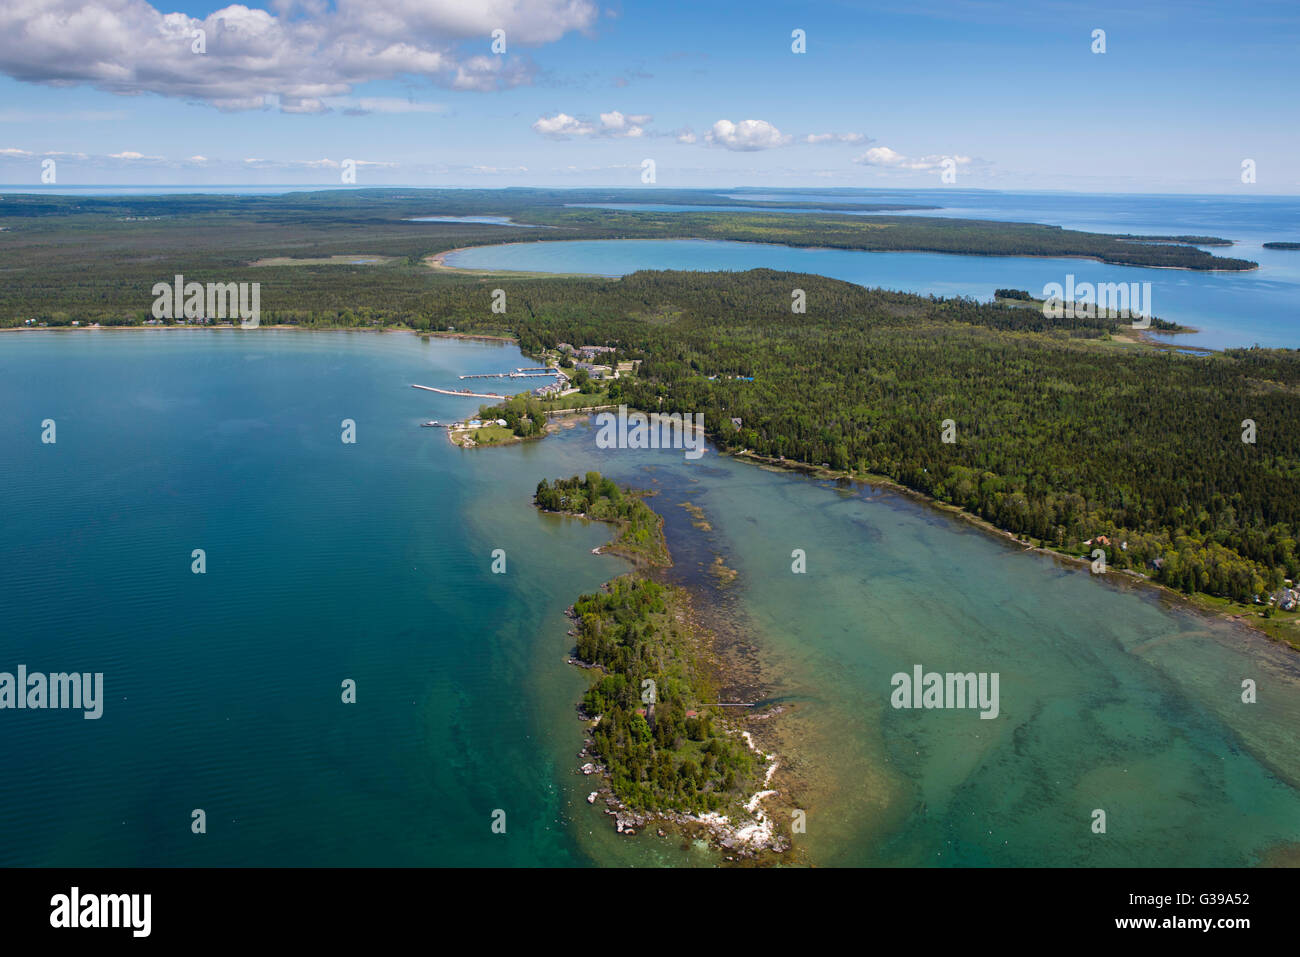 Aerial view of the Baileys Harbor Yacht Club Resort and a ...